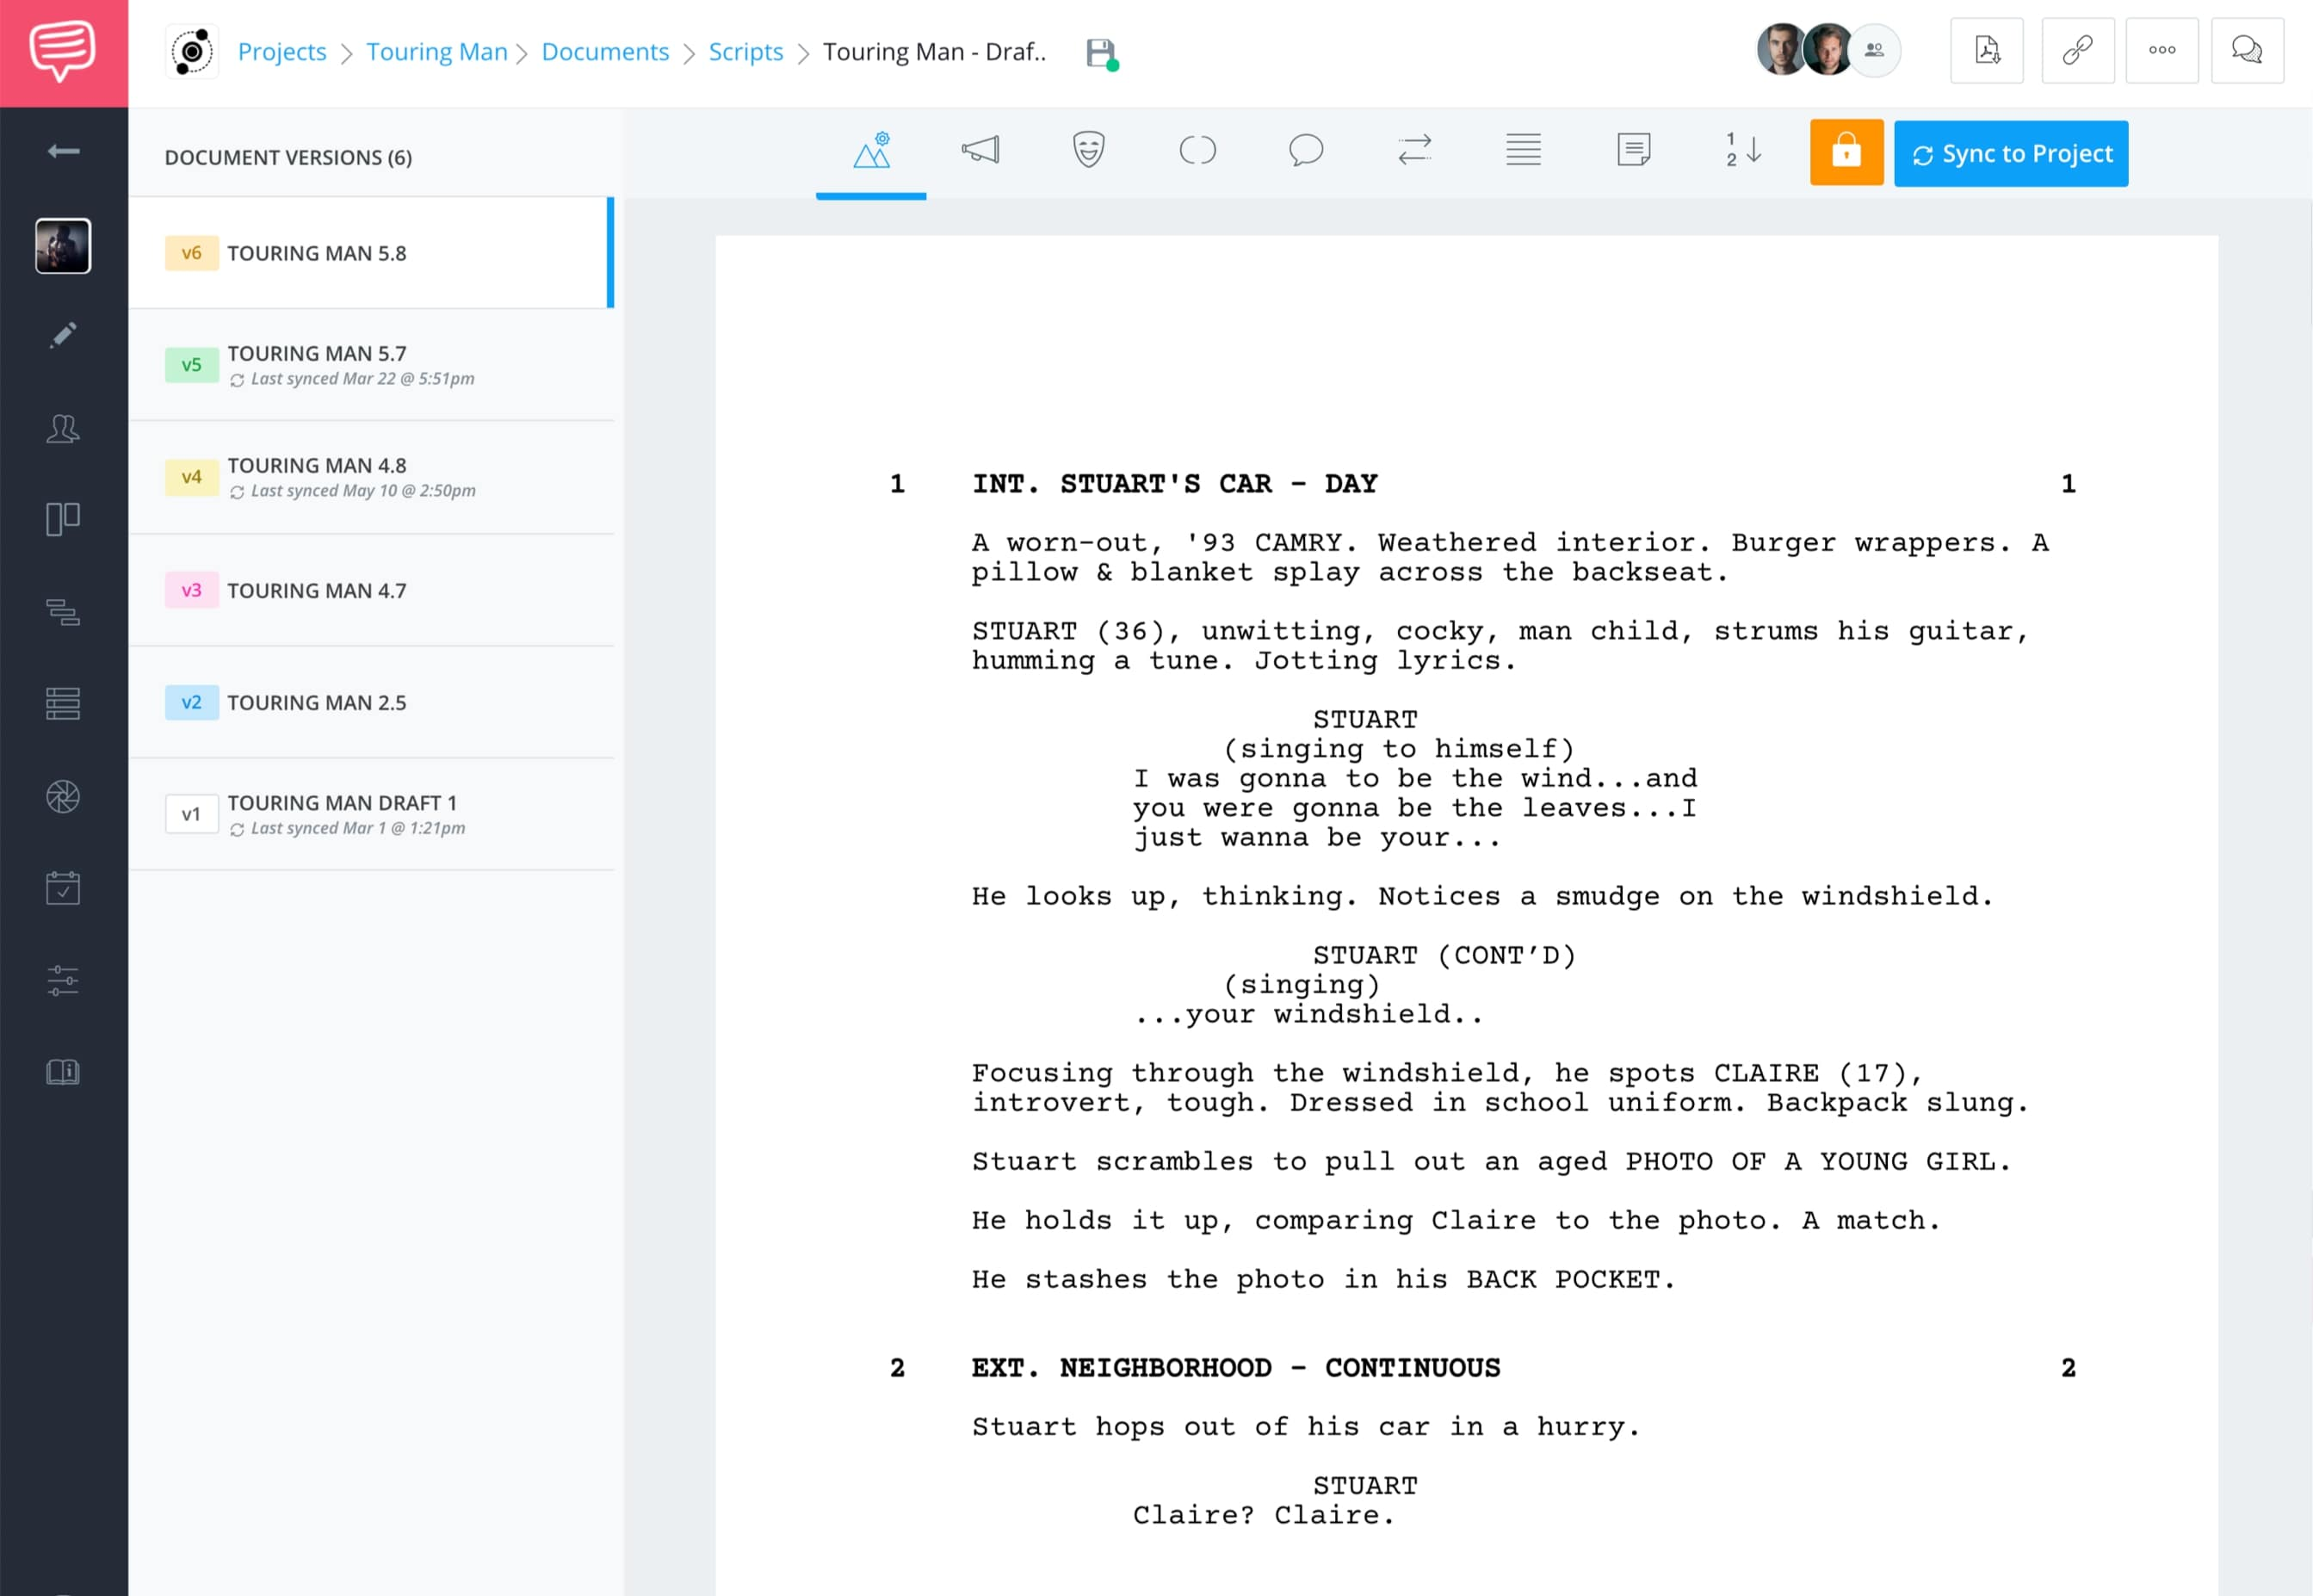 StudioBinder Free Screenwriting Software for Filmmaking